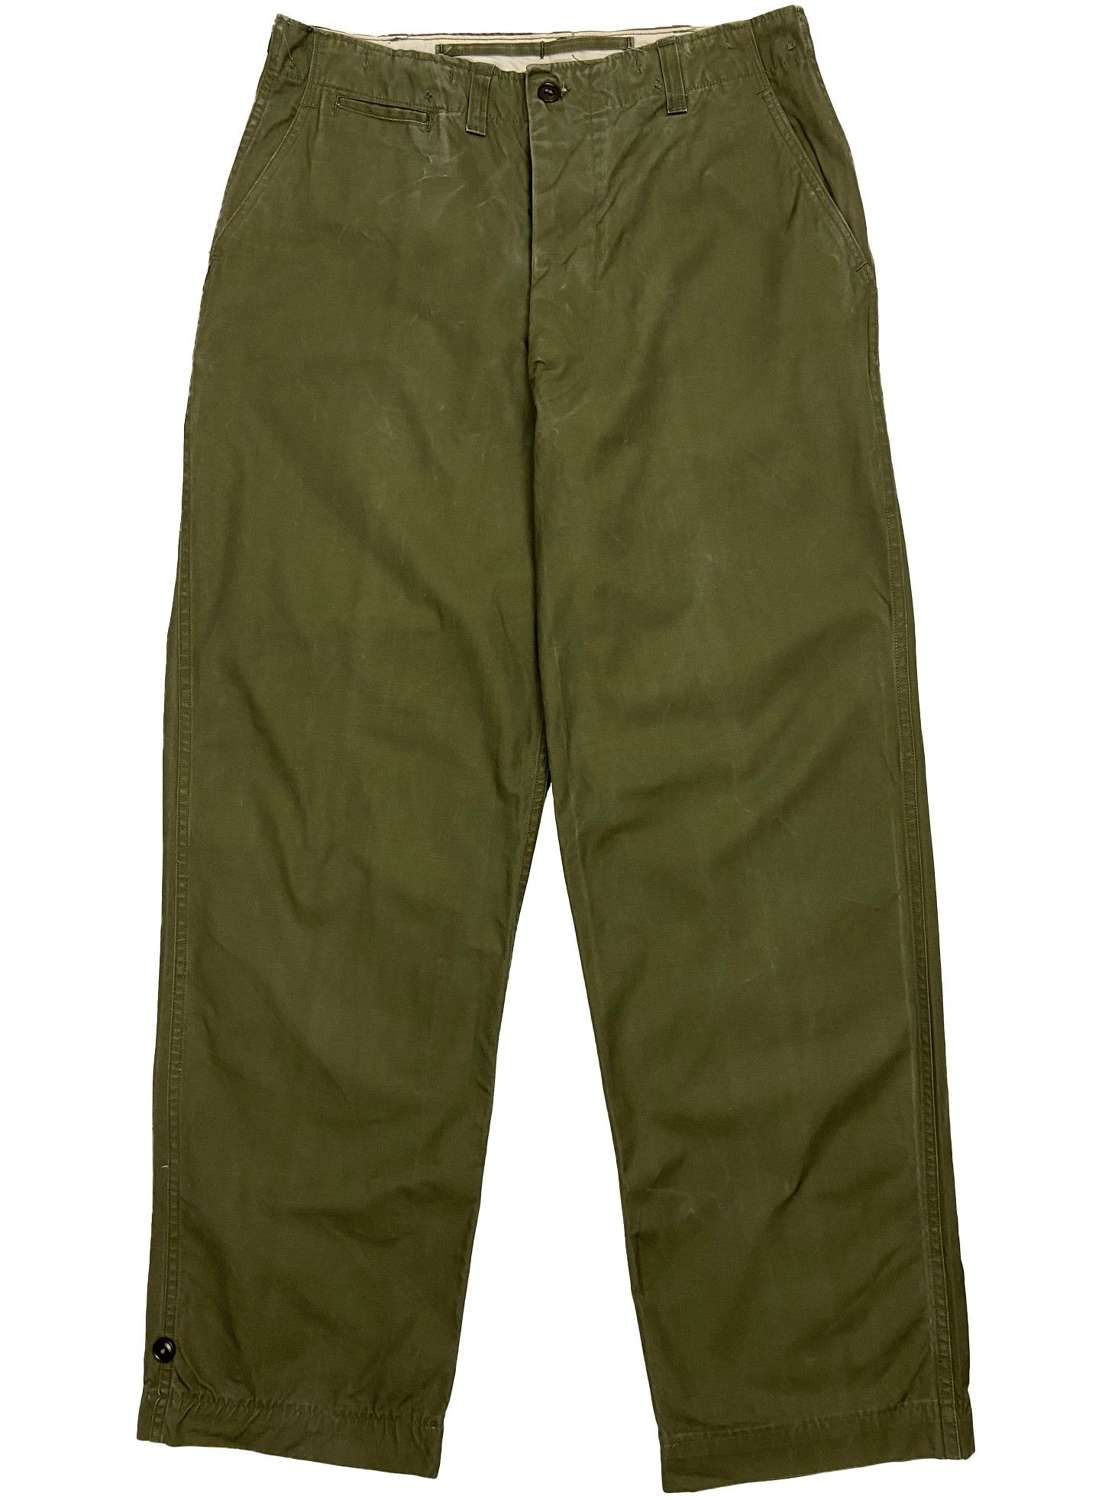 Original 1945 Dated US Army M1943 Trousers - 36x34